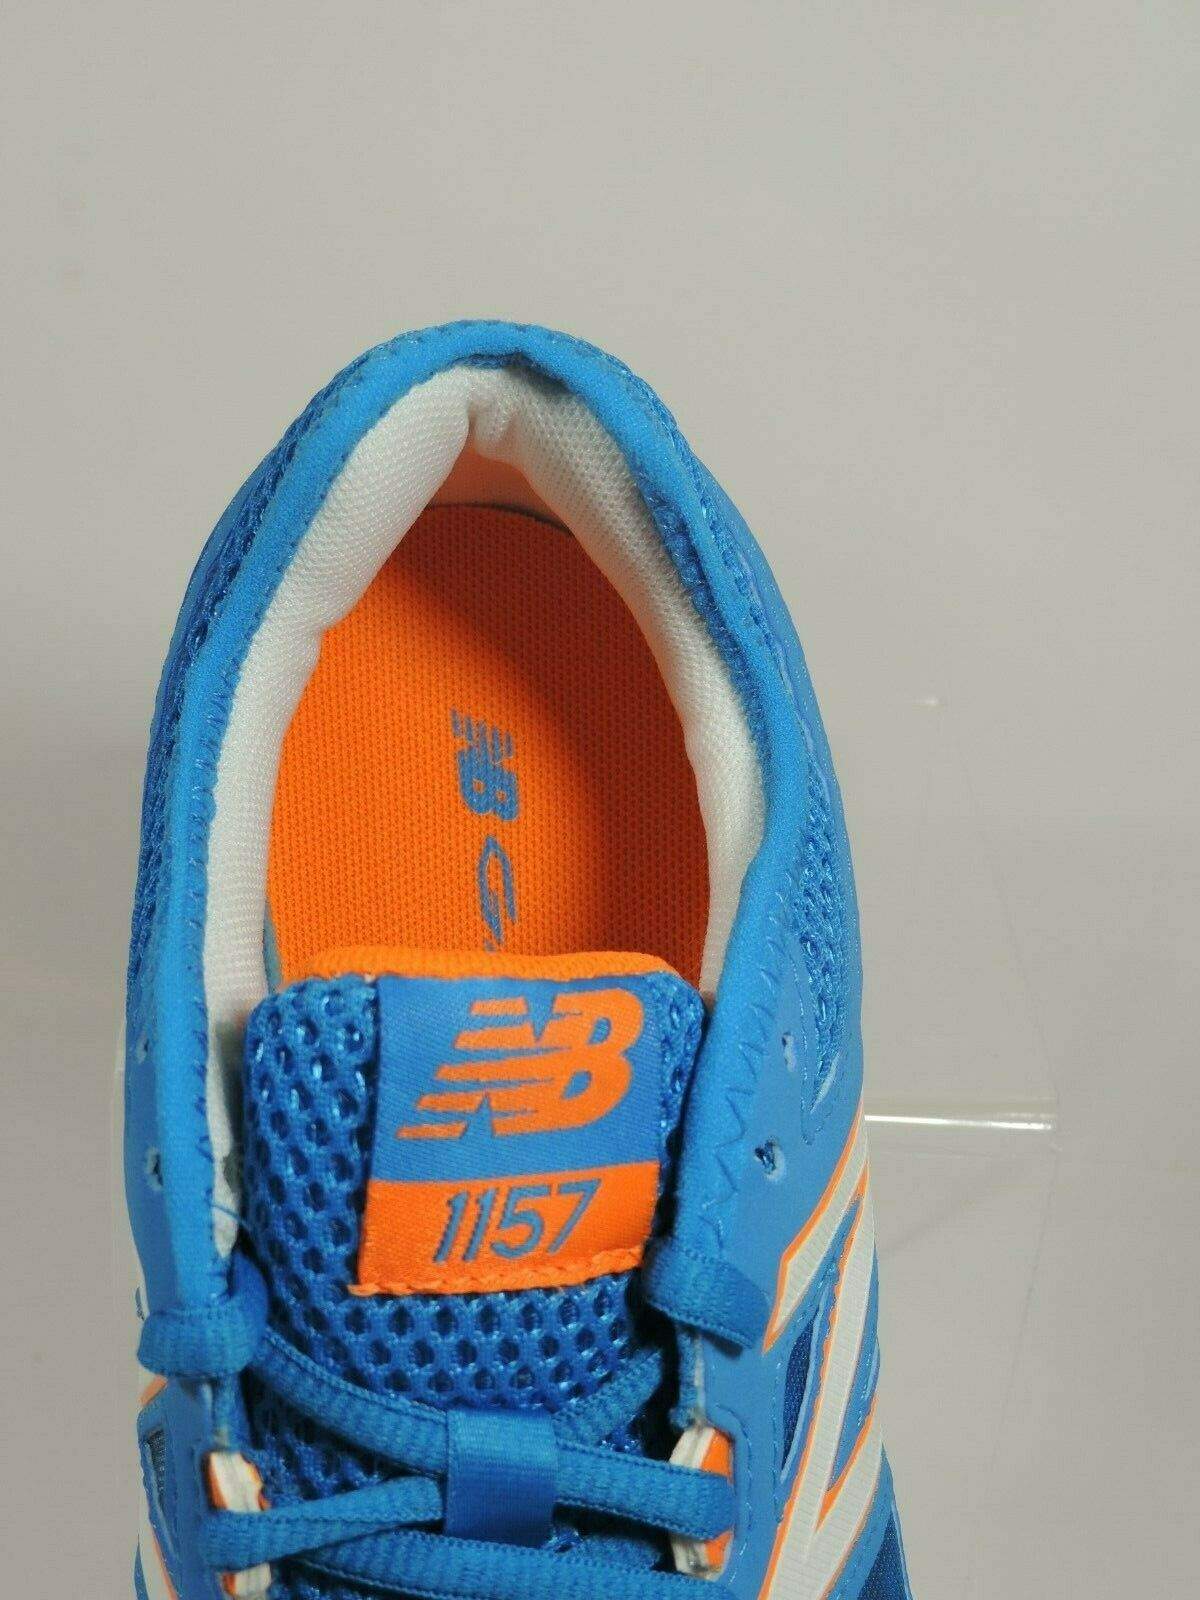 NEW BALANCE WOMENS SHOES WX1157BW SNEAKERS RUNNING BLUE WHITE SZ 6 B image 3